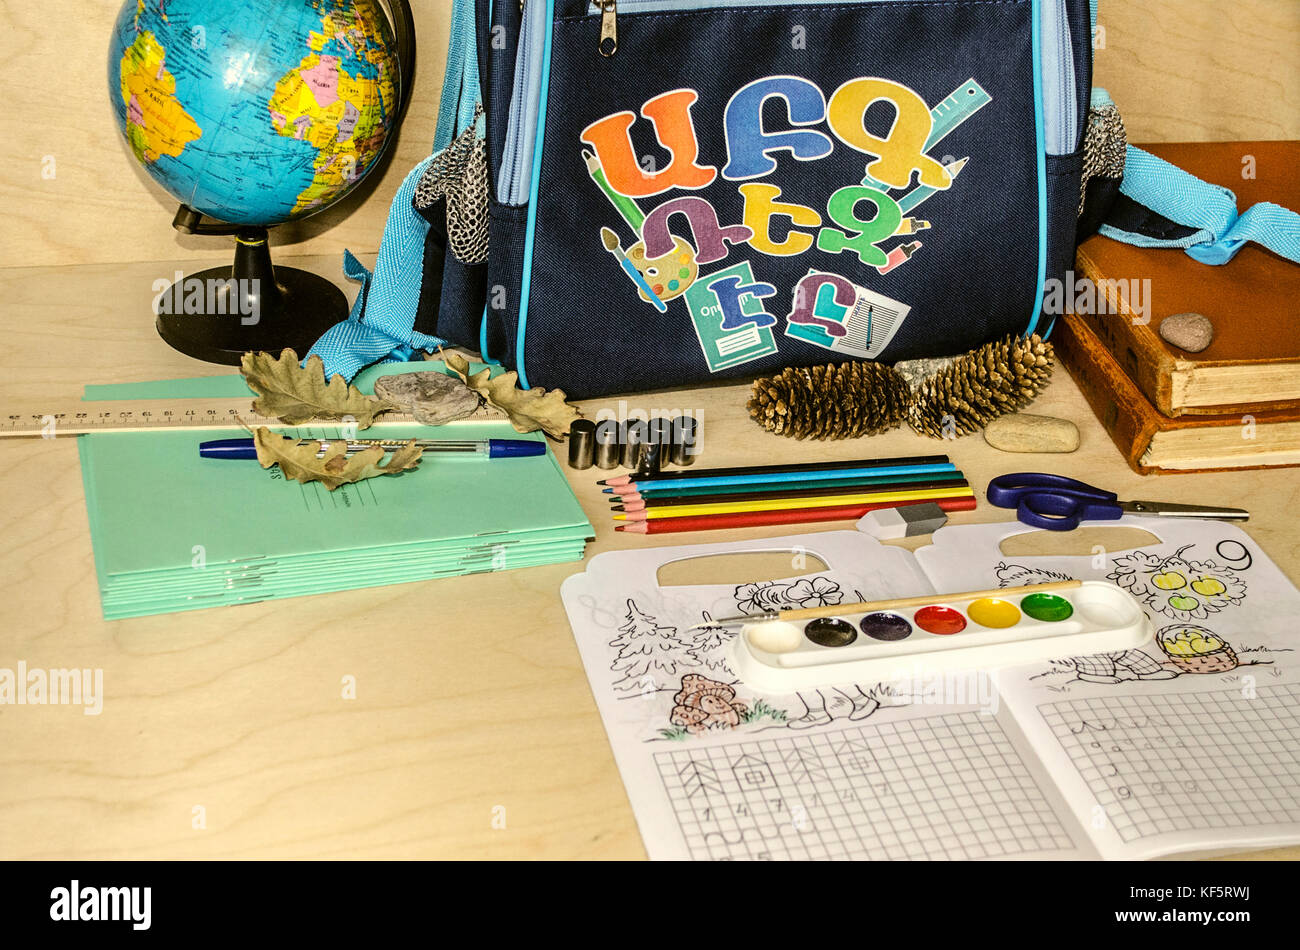 First school supplies exercise book,pencils,paints,scissors and blue backpack with letters - Stock Image